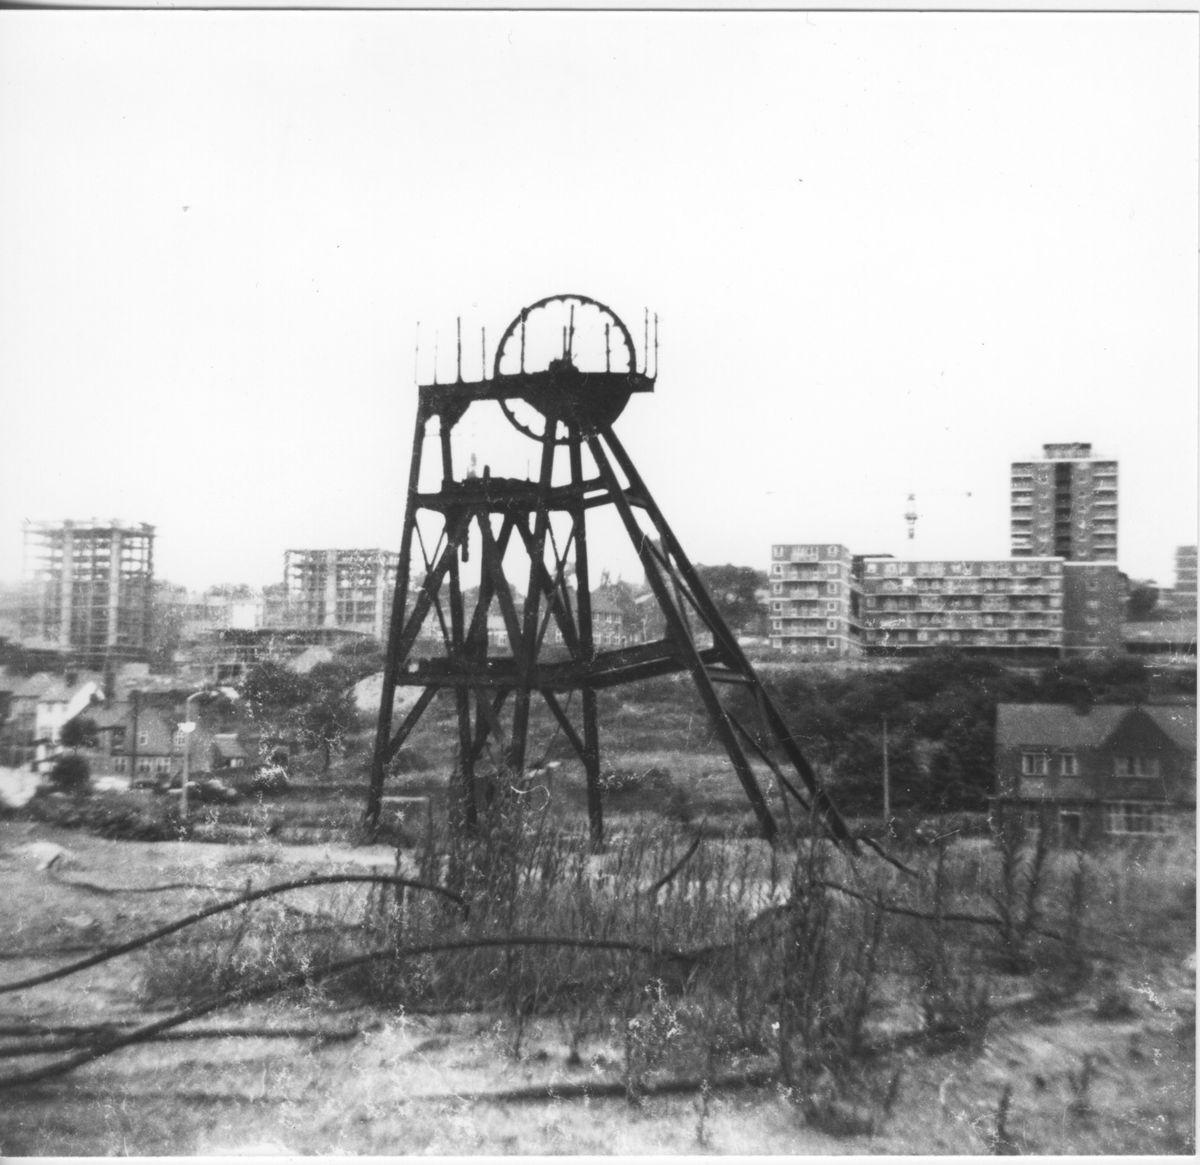 The Chapel Street estate in Brierley Hill under construction in 1966